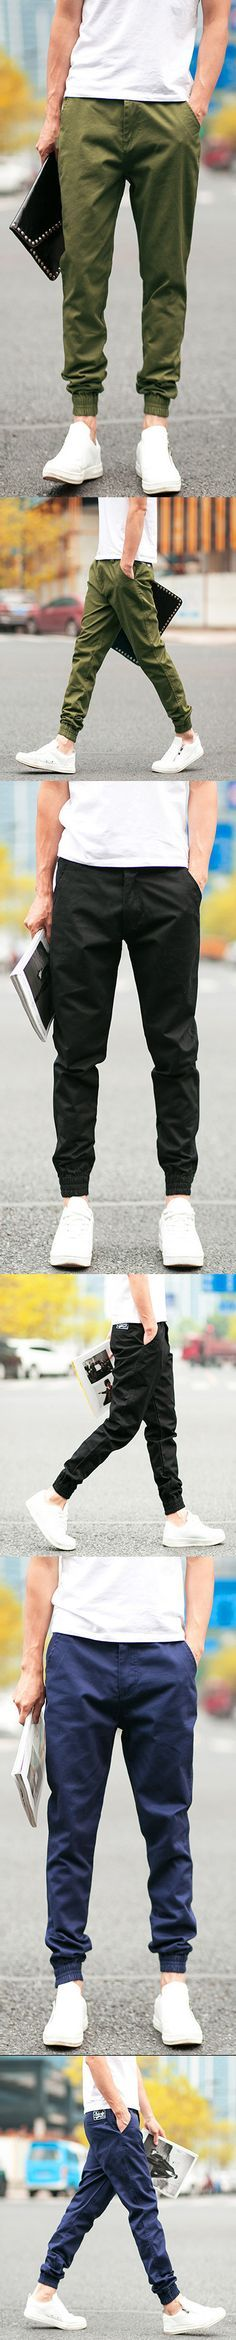 Find a casul and all matching pants? Check this style from Azbro.com #fathersday